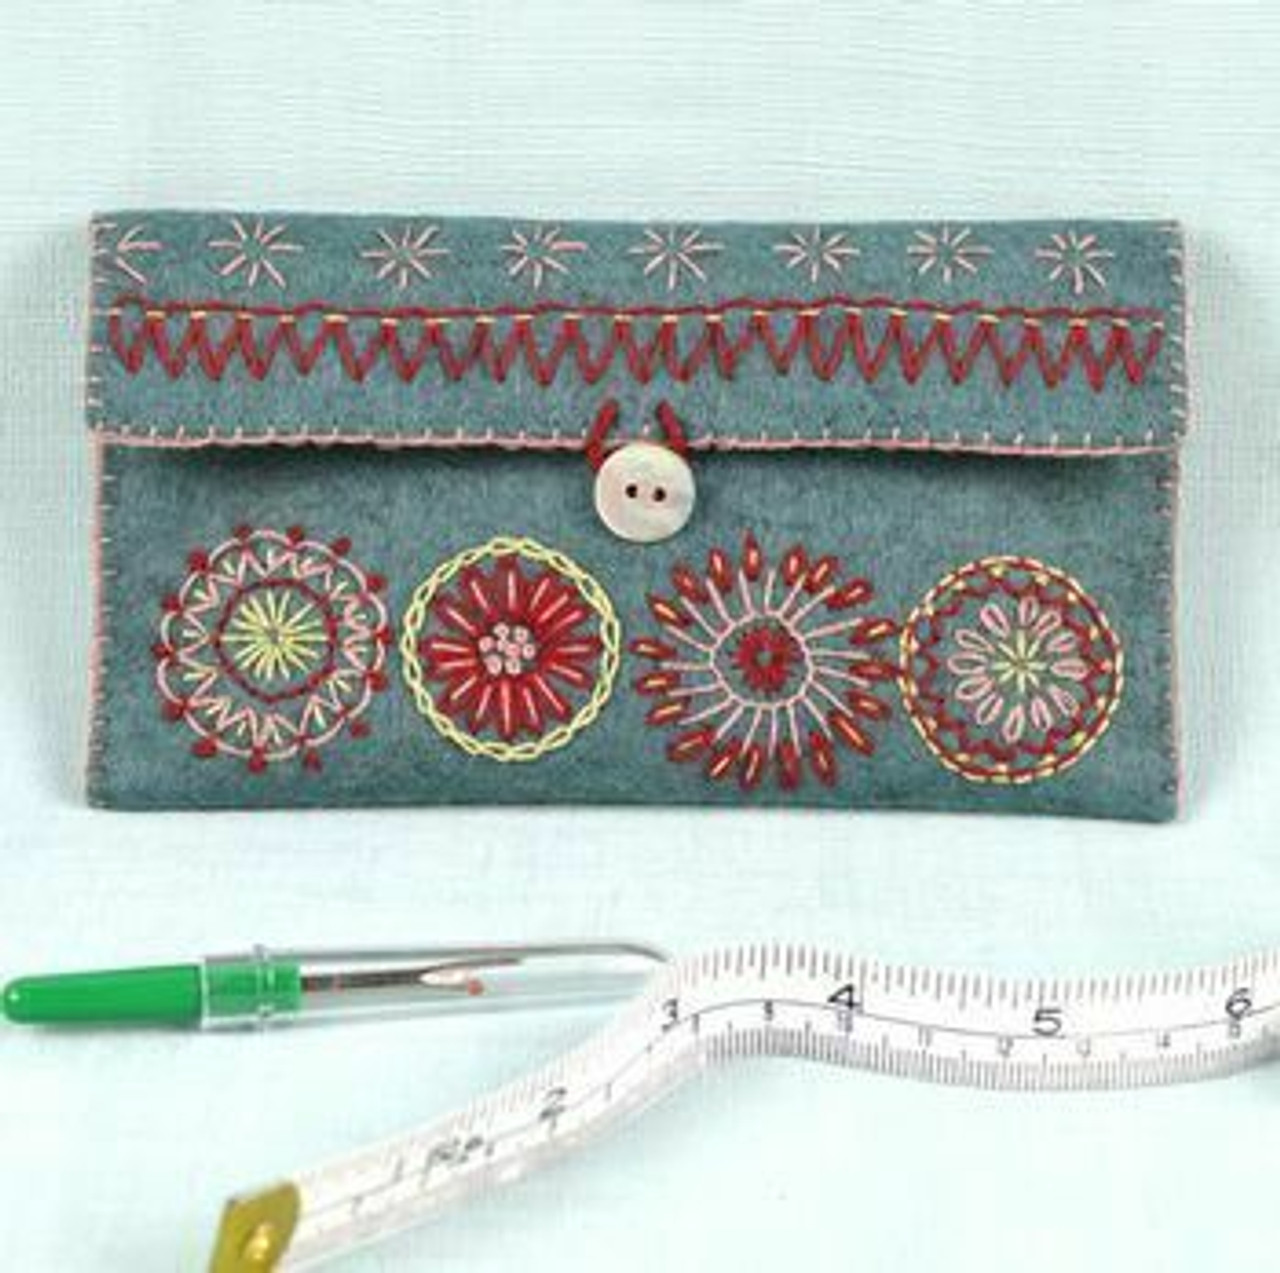 Sewing Pouch Felt Embroidery Kit